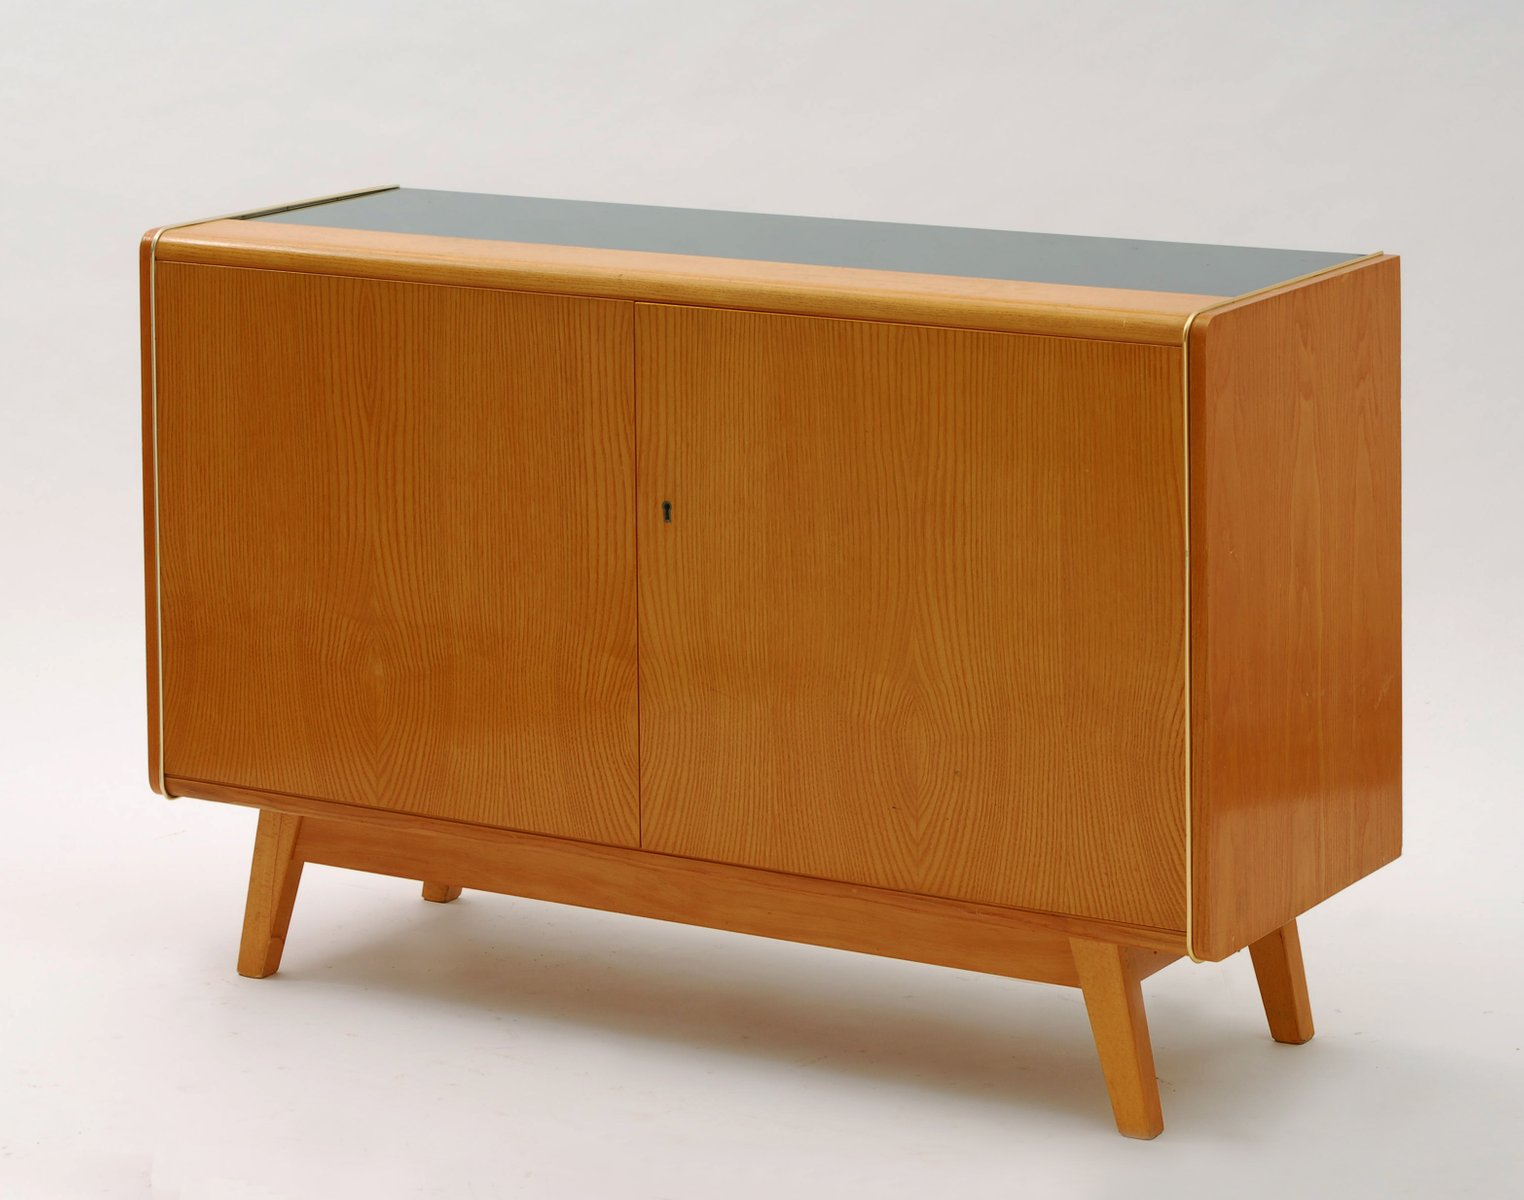 Nitrogen Bench Top Cabinet ~ Cabinet with opaxit glass table top from jitona np